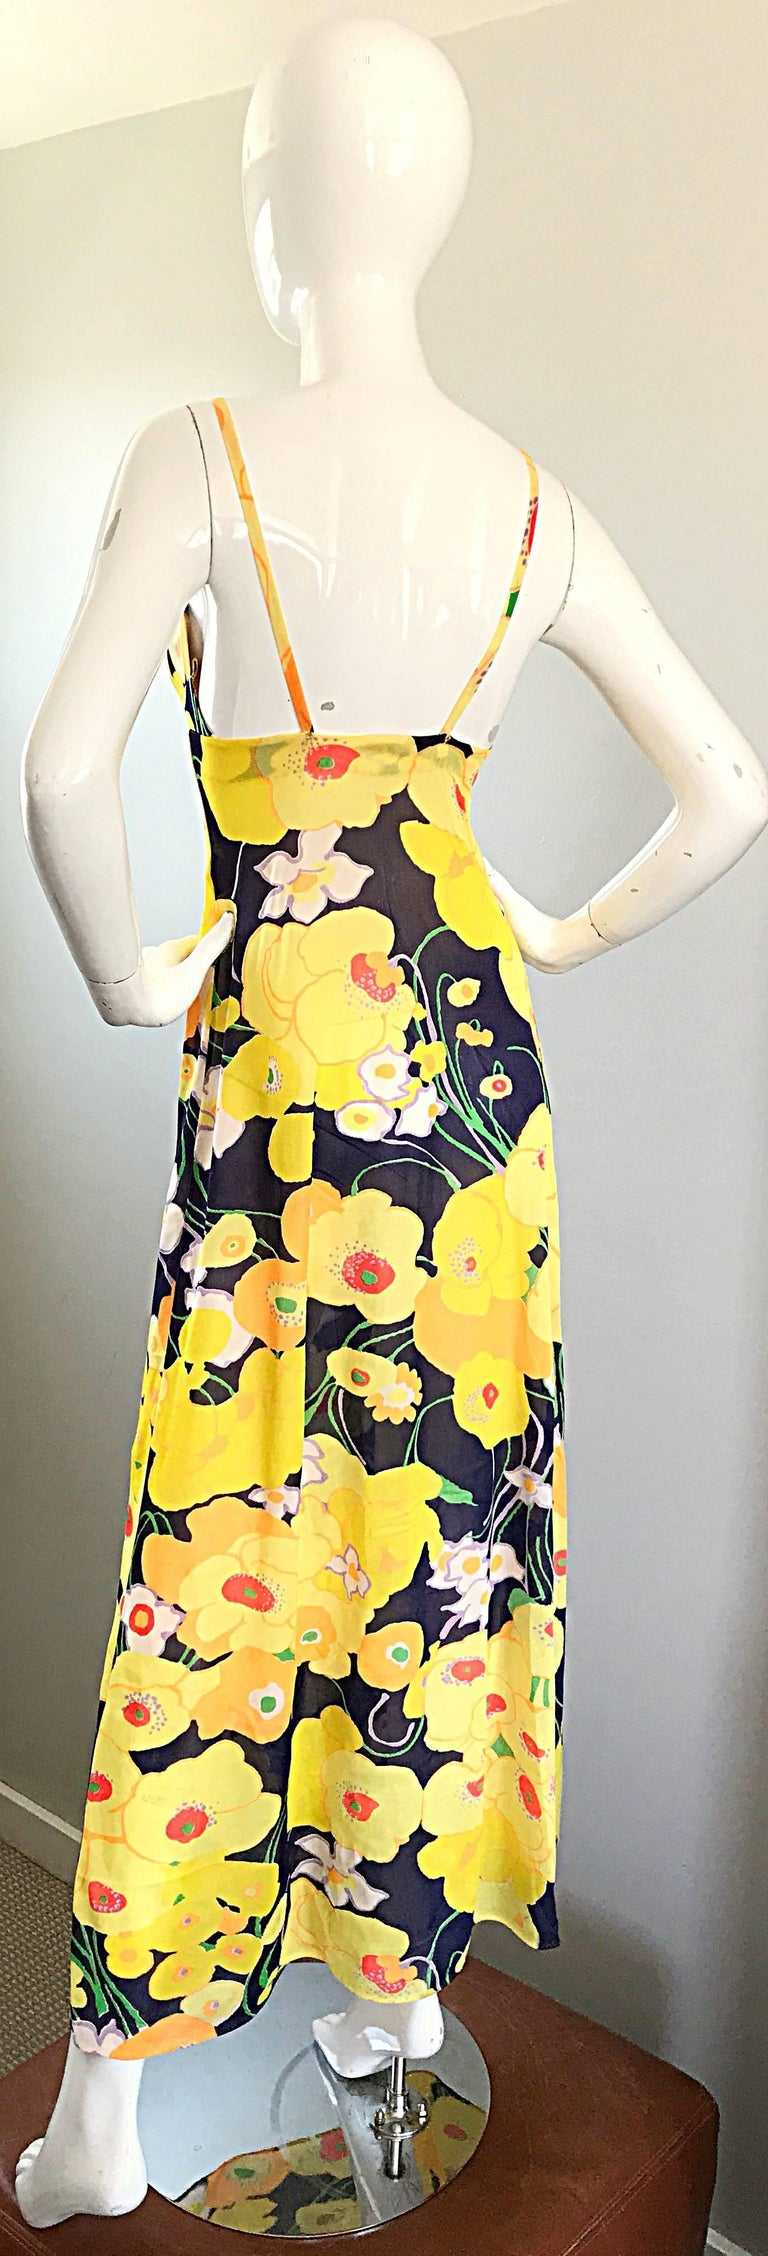 Amazing 1970s Christian Dior Flower Print Vintage 70s Maxi Dress and Jacket Set In Excellent Condition For Sale In San Francisco, CA